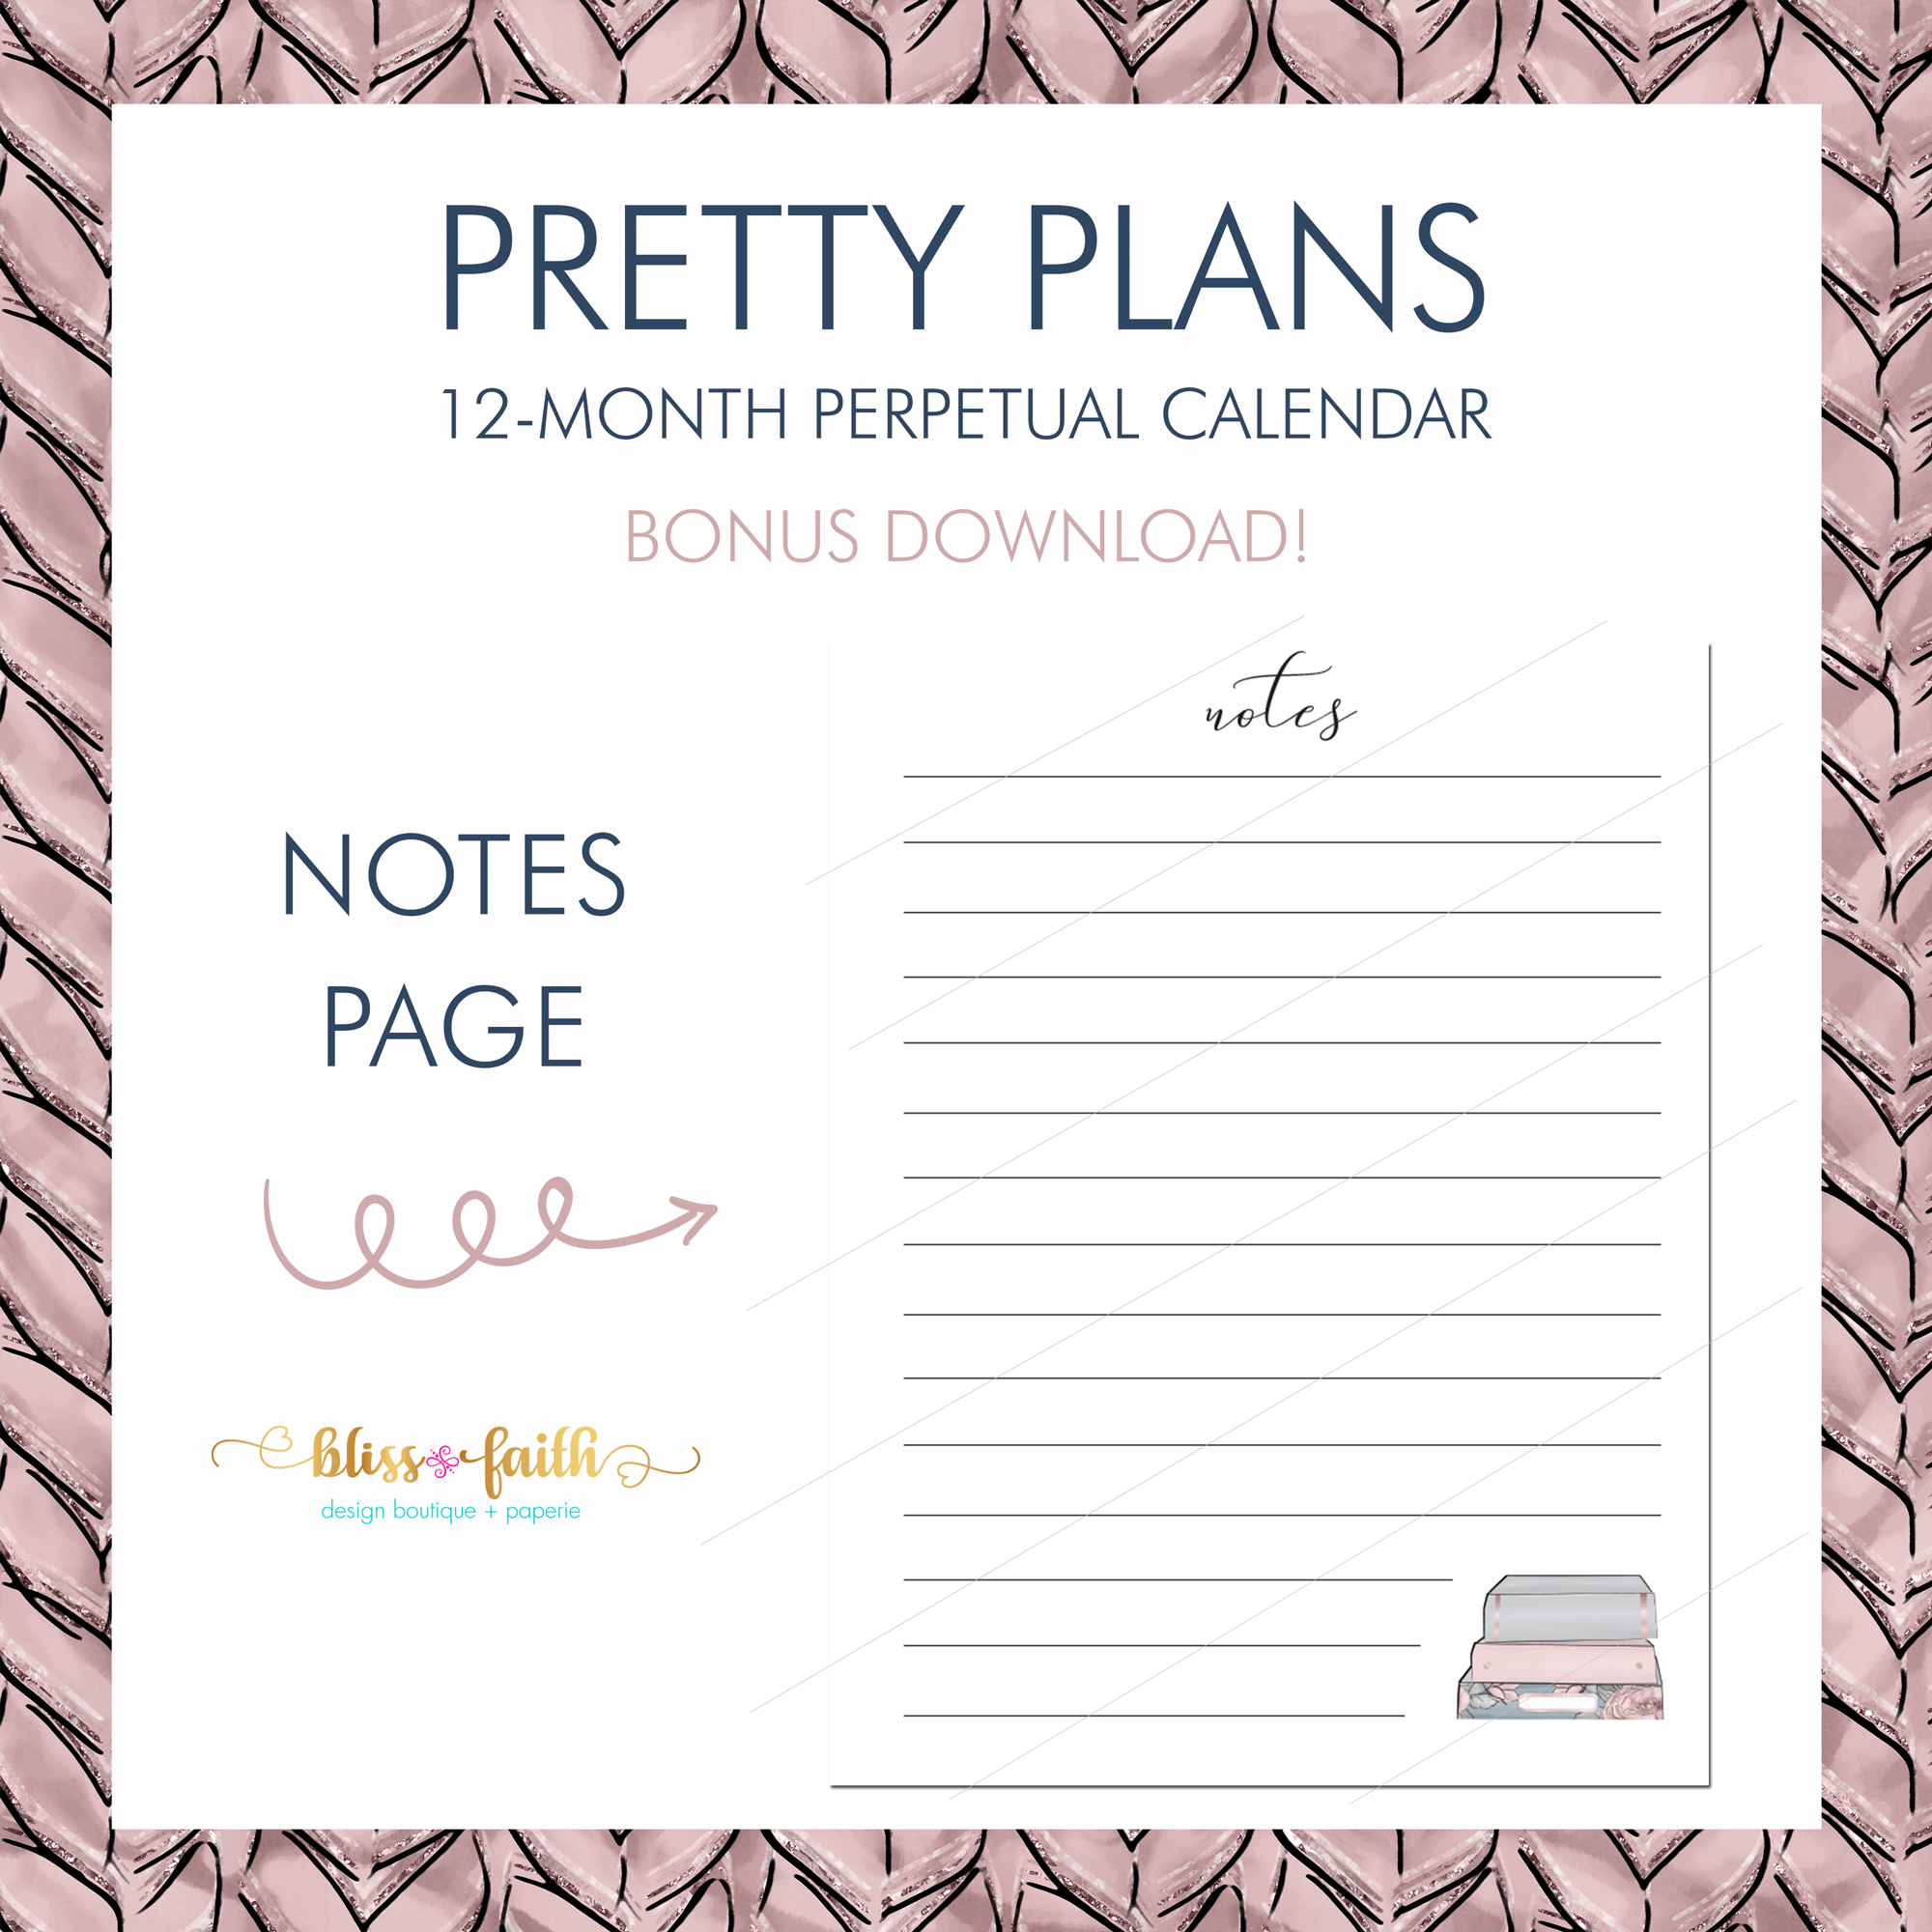 image relating to Perpetual Calendar Printable named Charming Ideas Perpetual Calendar Printable + Notes Site